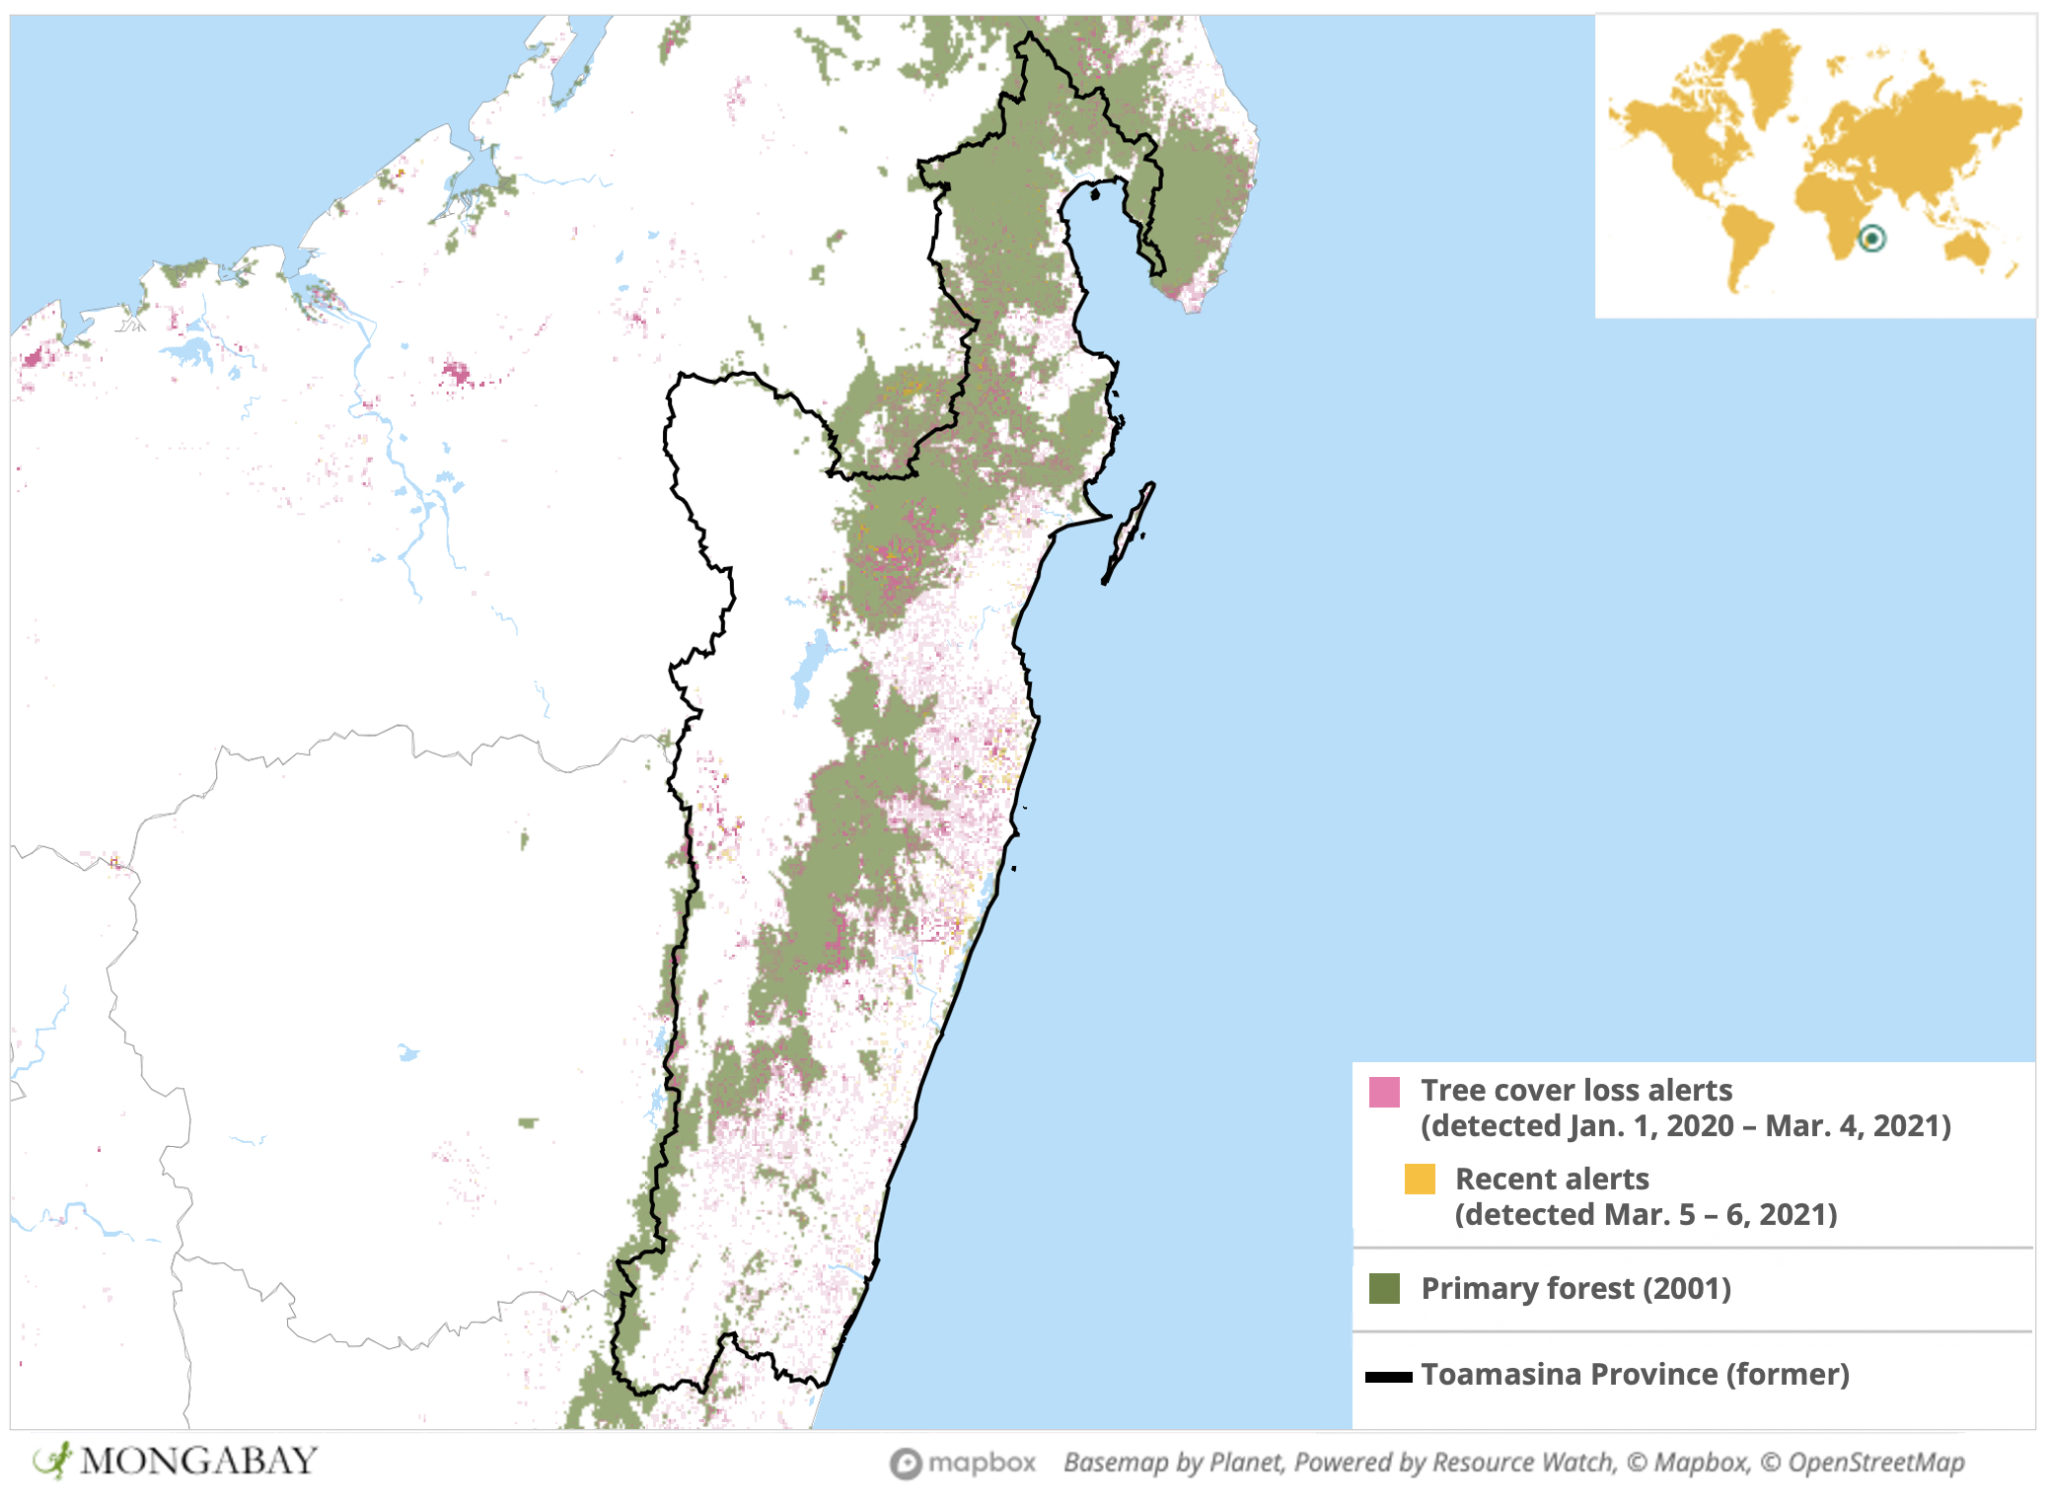 Satellite data show the area comprising the former province of Toamasina experienced a surge in deforestation in 2020.